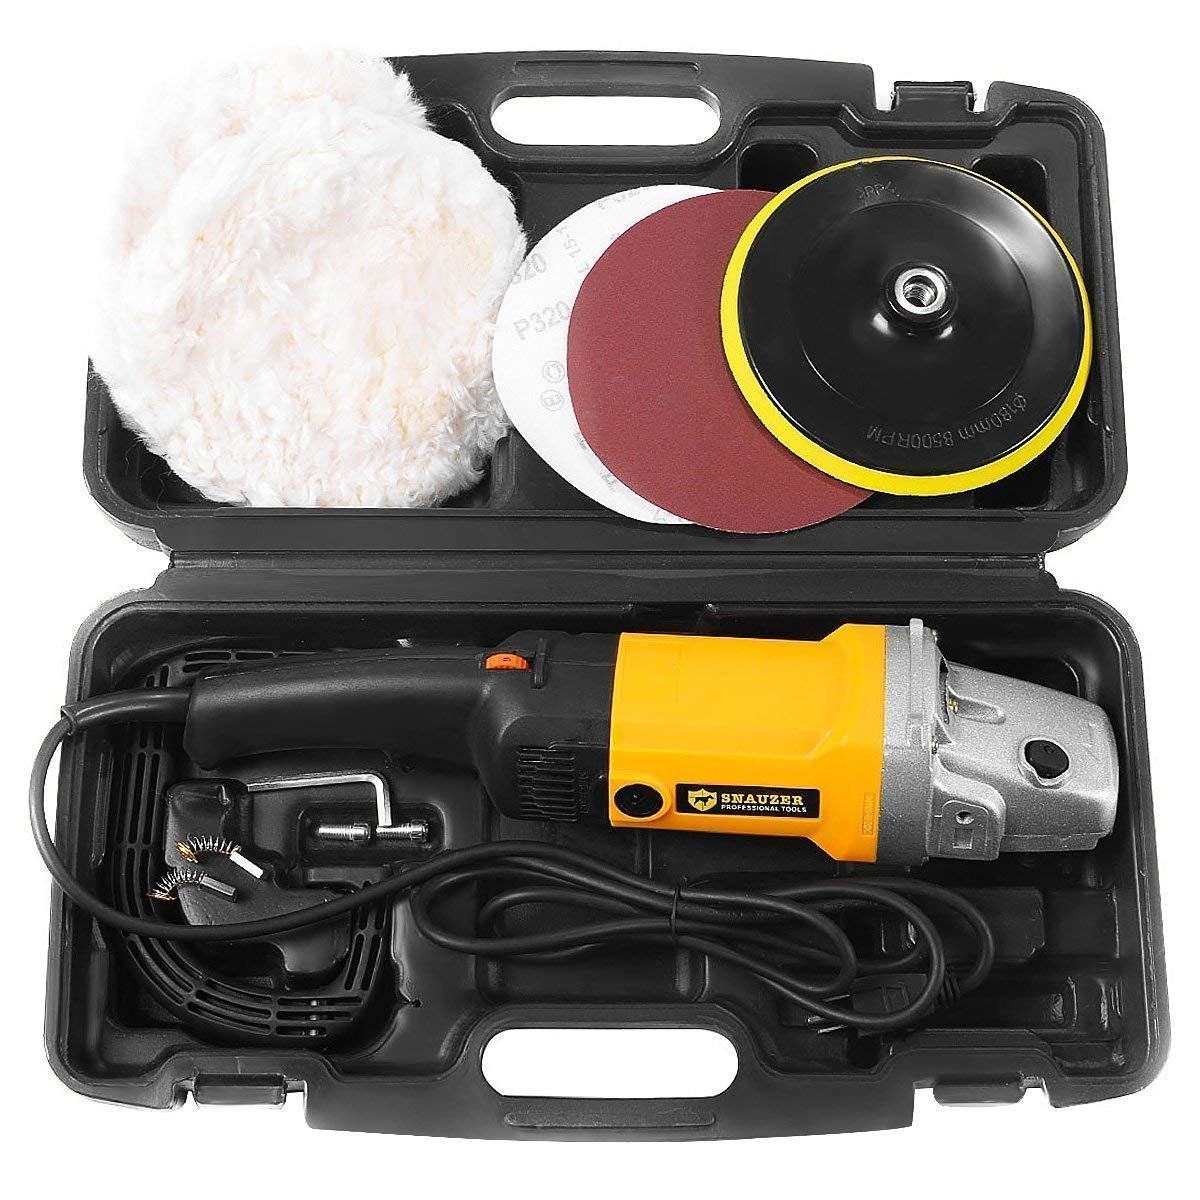 Goplus Electric Car Polisher Variable 6-Speed 7' Buffer Sander w/Bonnet Pad Superbuy